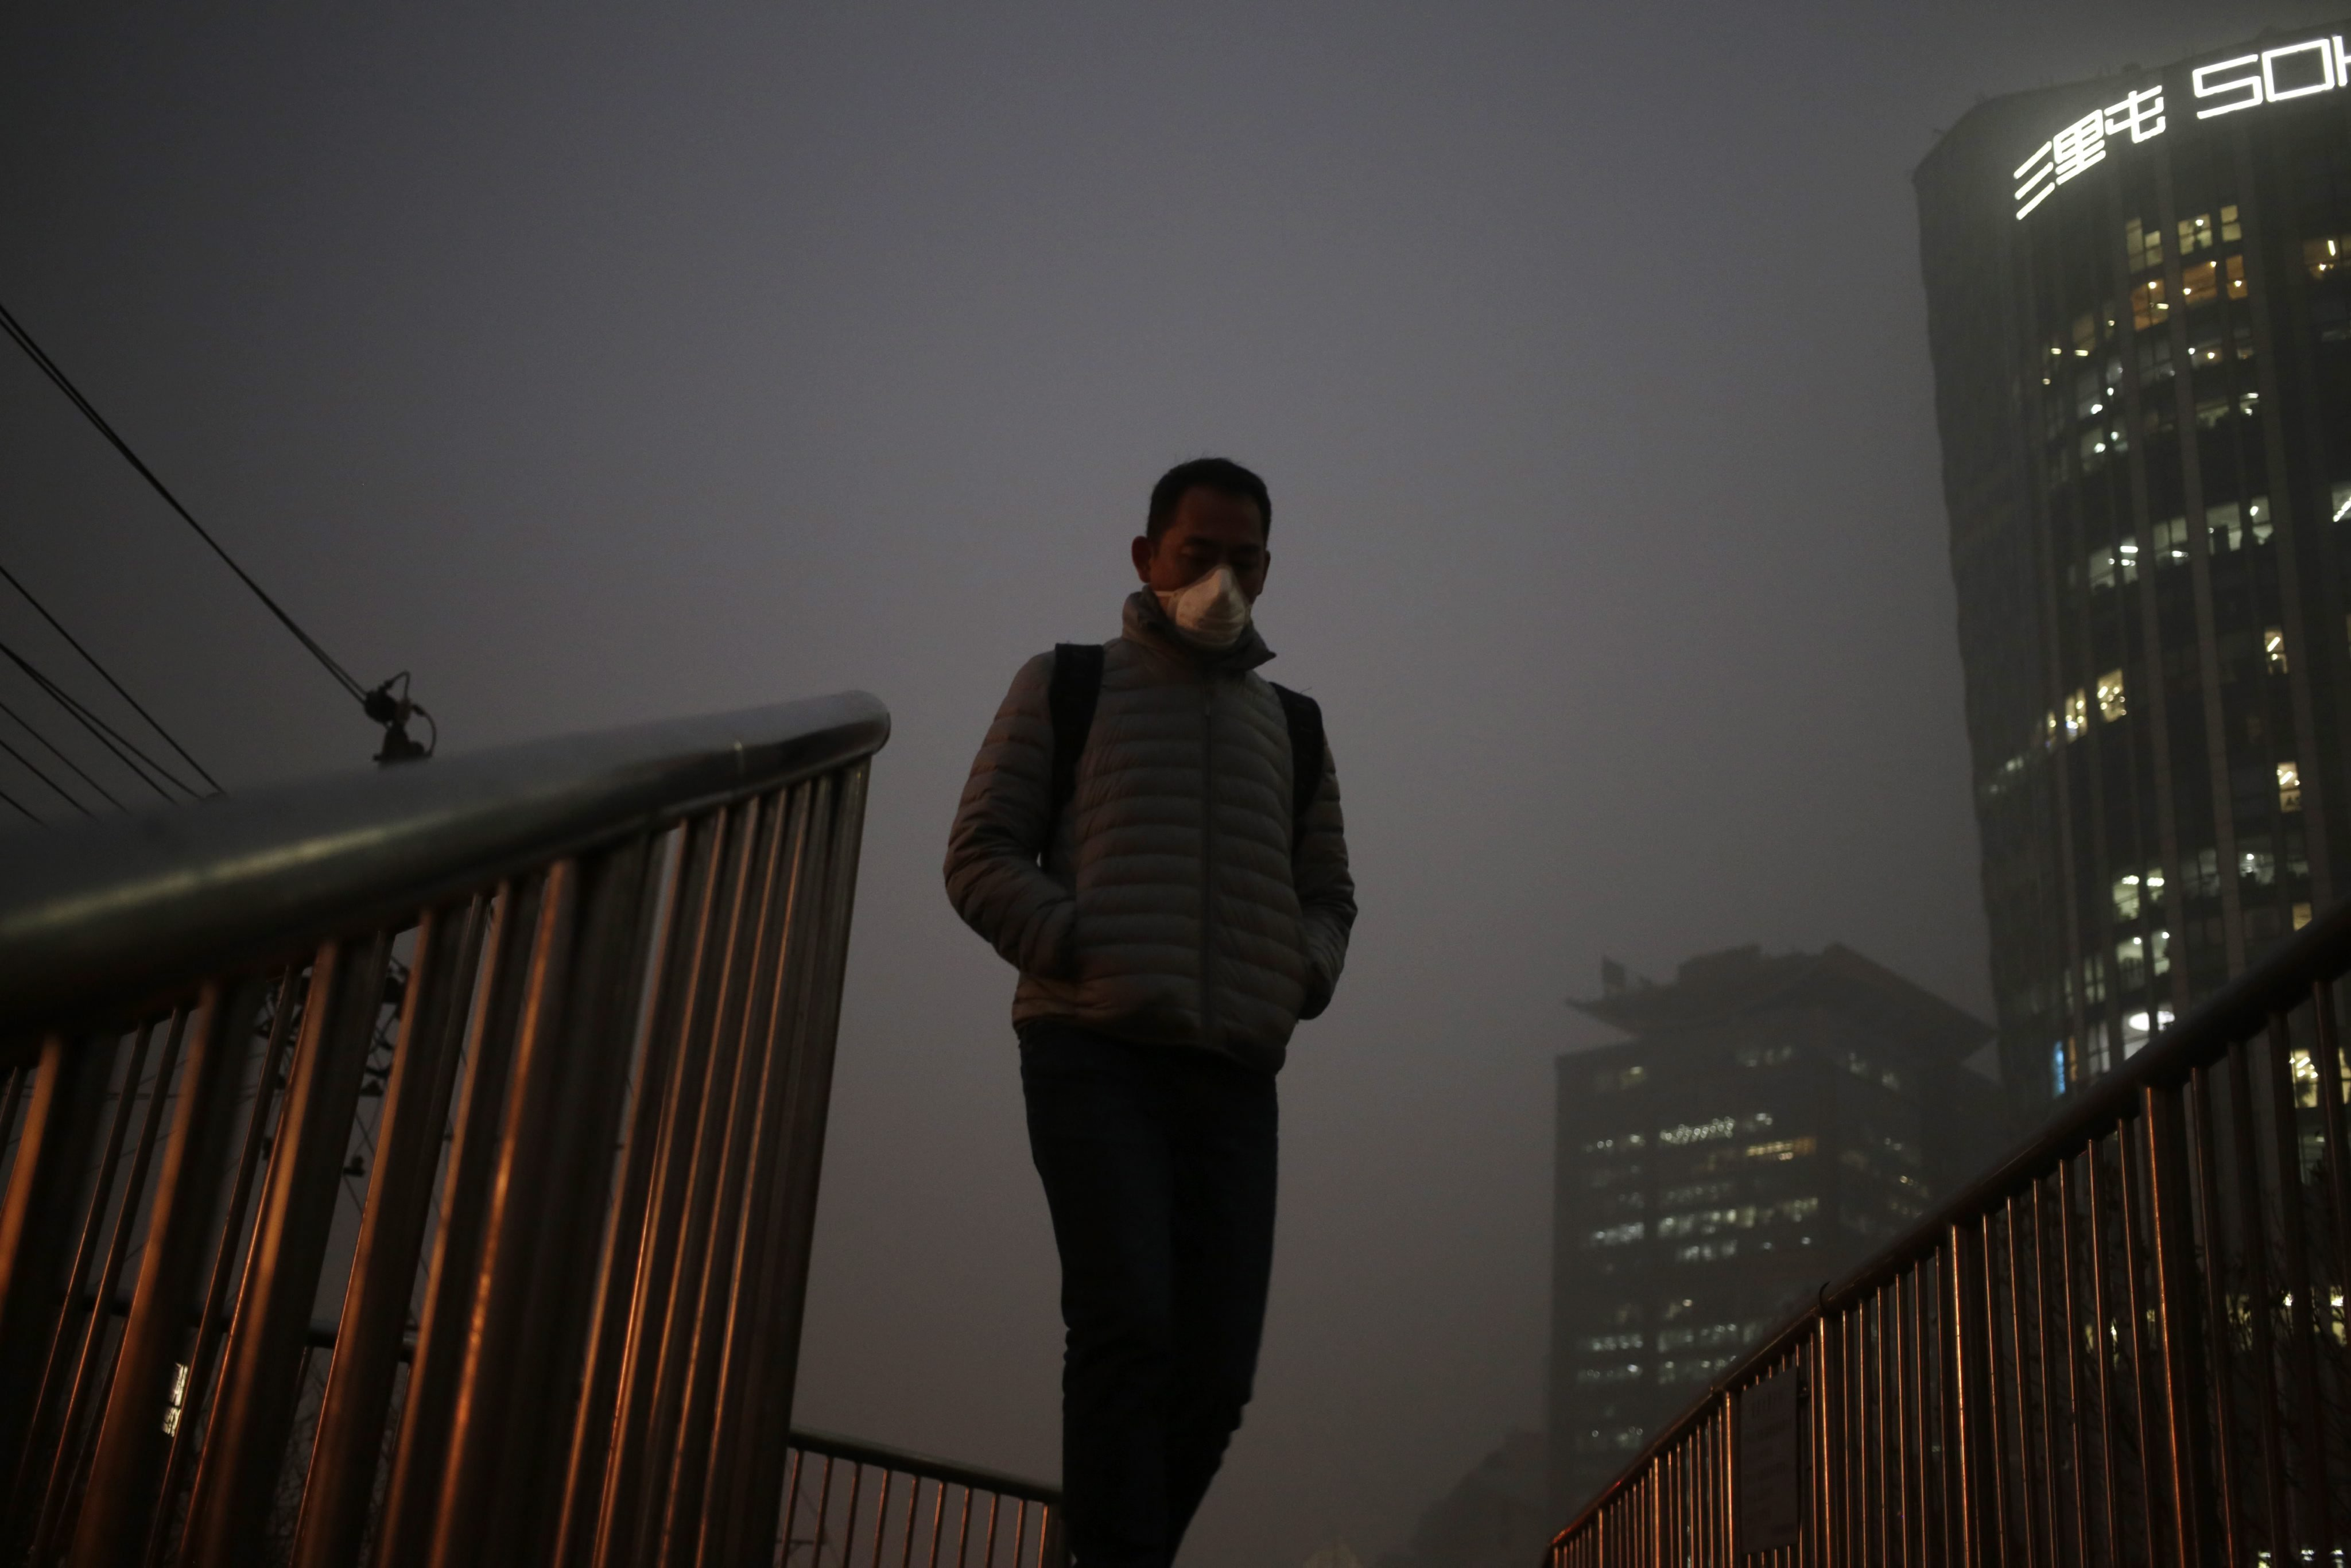 A man wears a mask as he walks on a bridge shrouded in smog in Beijing, Dec. 1, 2015. Beijing issued its second red alert for smog on Dec. 18, 2015, urging schools to close and residents to stay indoors for the second time in 10 days.